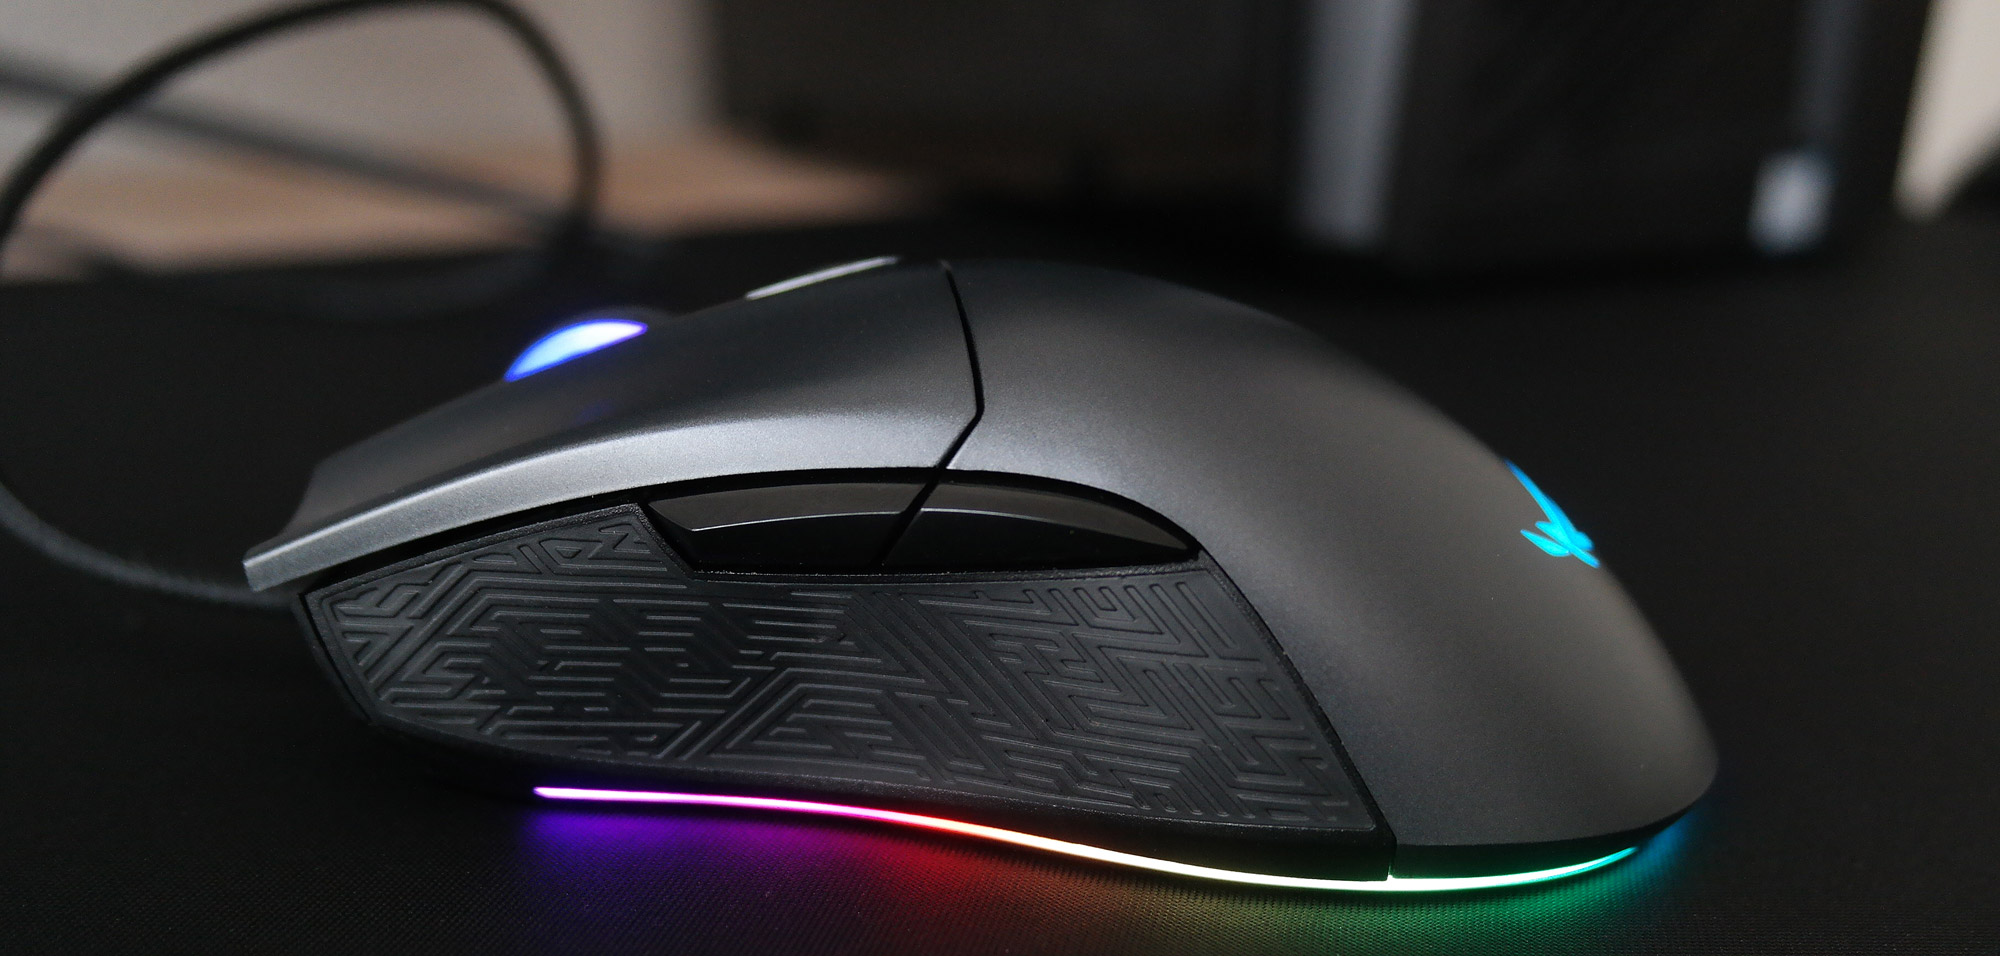 Switched on: The ROG Gladius II Origin gaming mouse is a